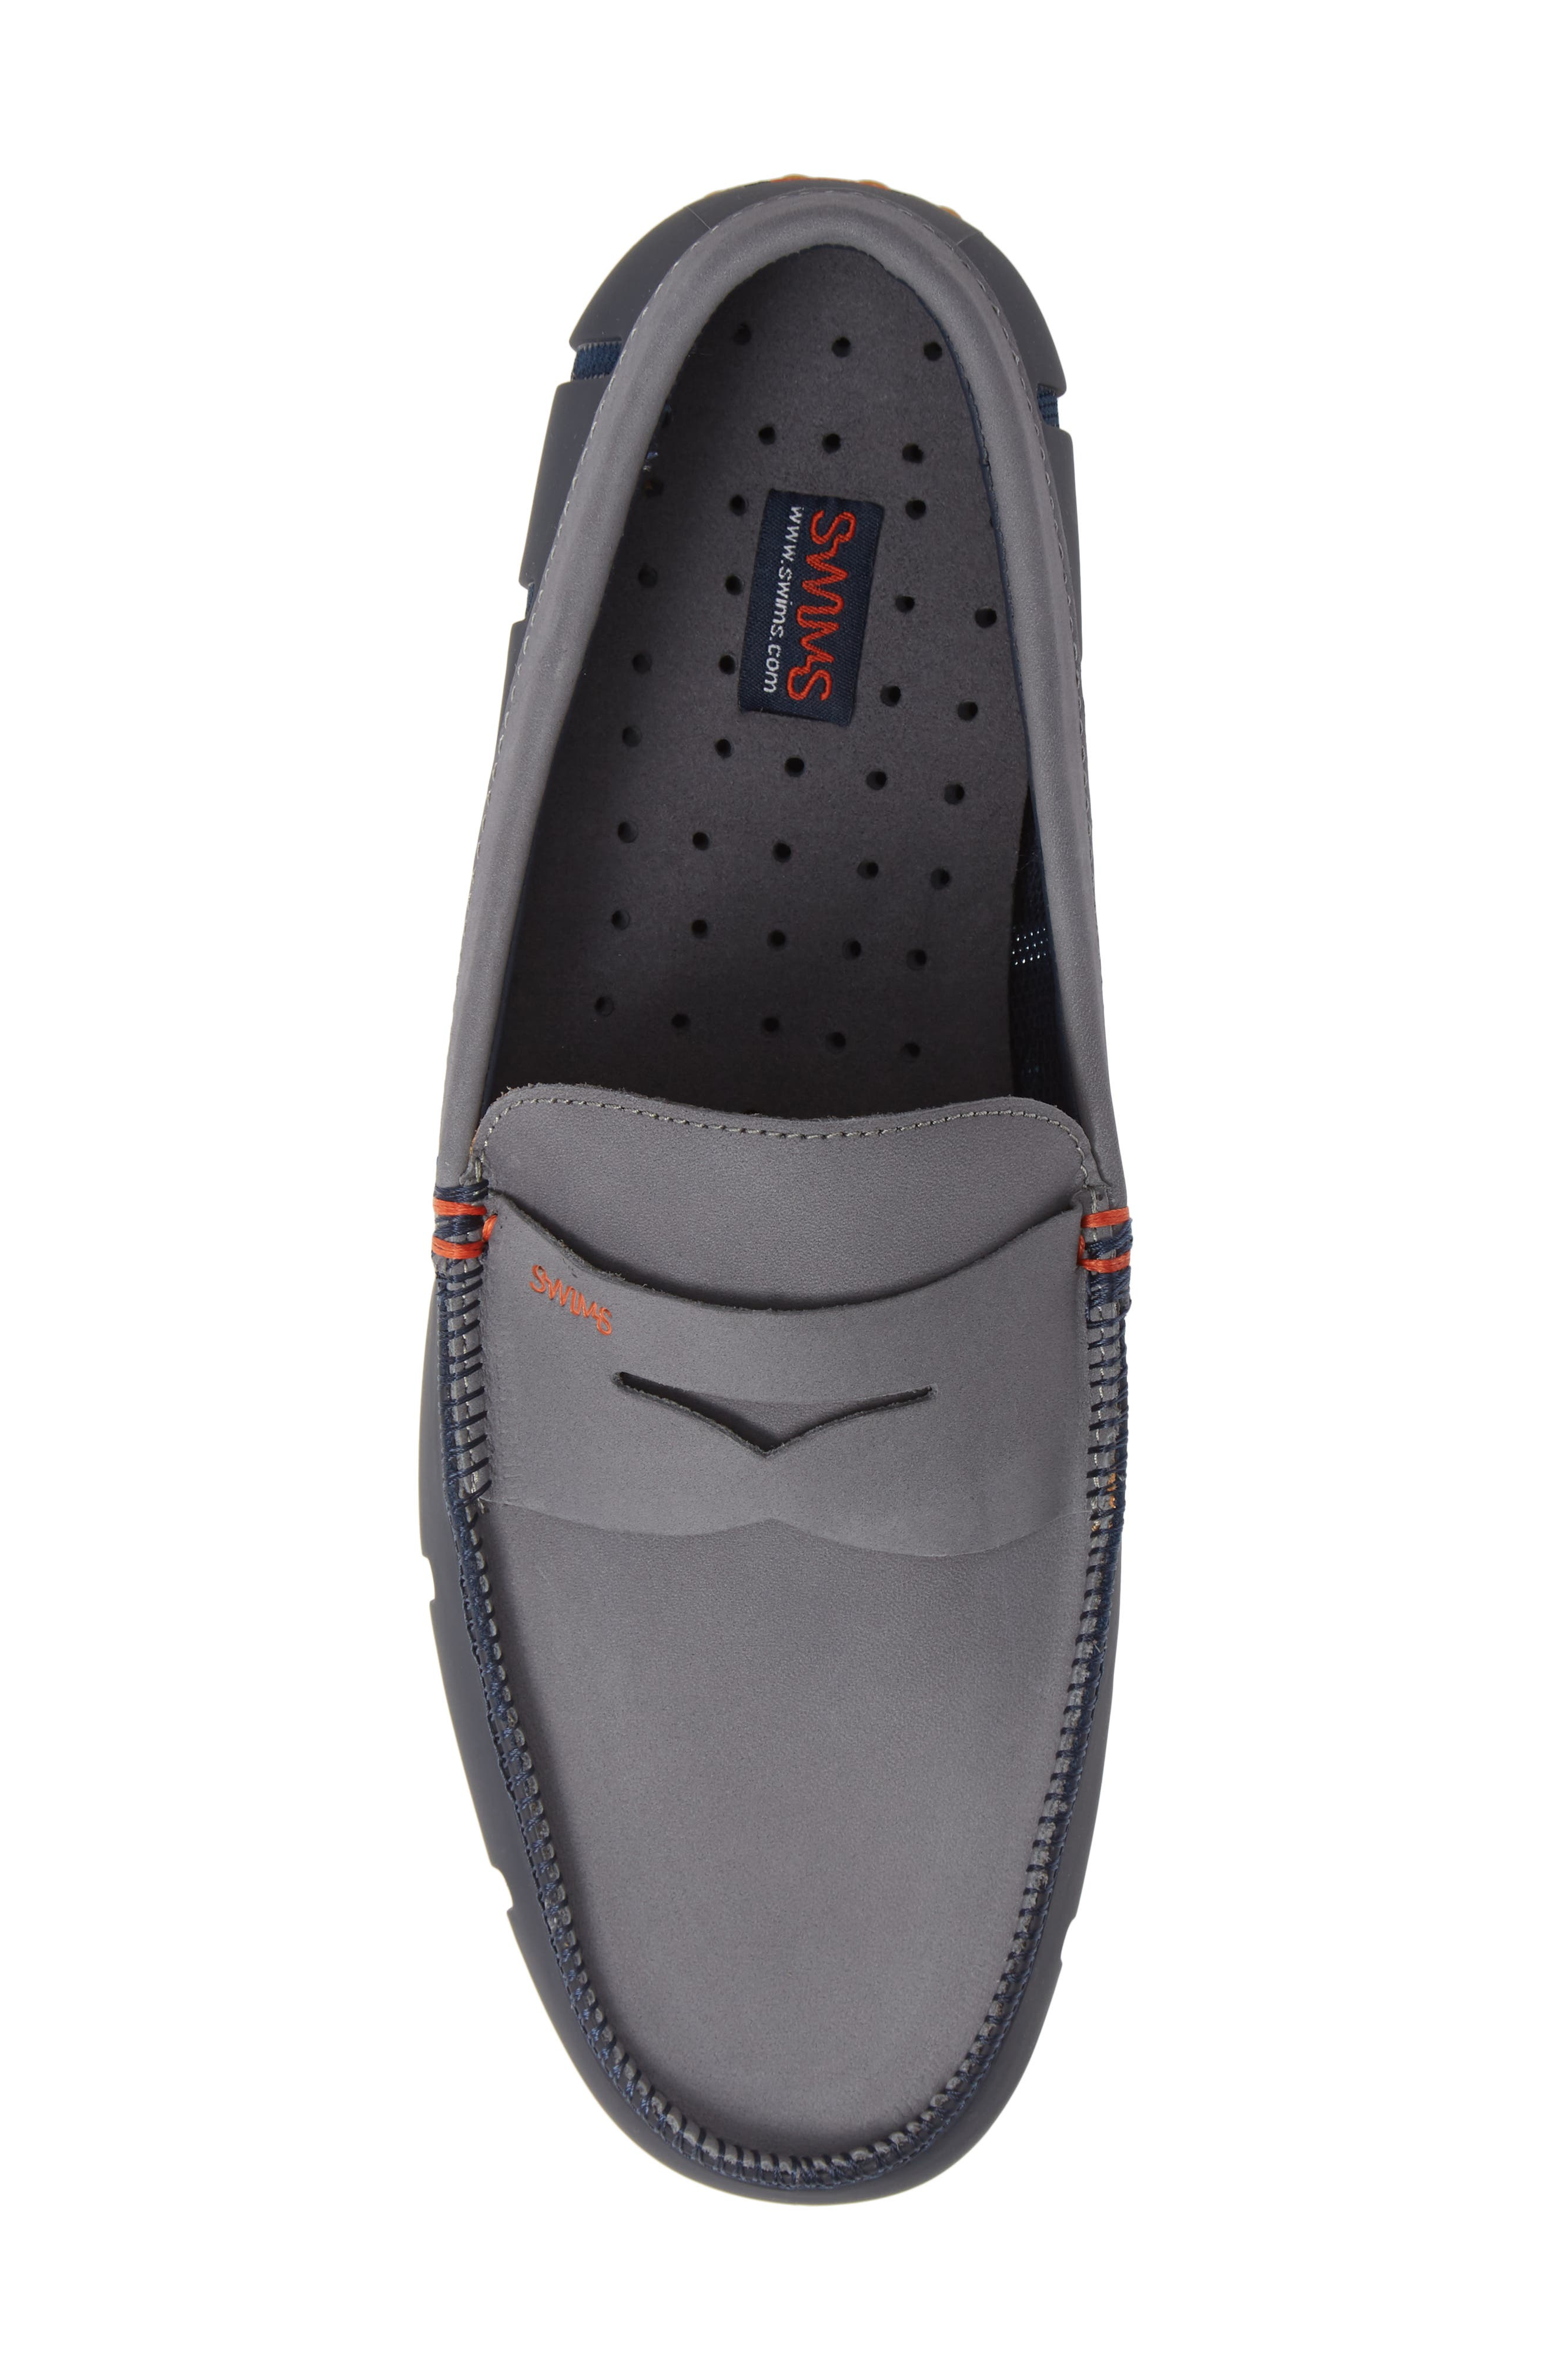 Lux Penny Loafer,                             Alternate thumbnail 5, color,                             NAVY/ GRAY/ GUM